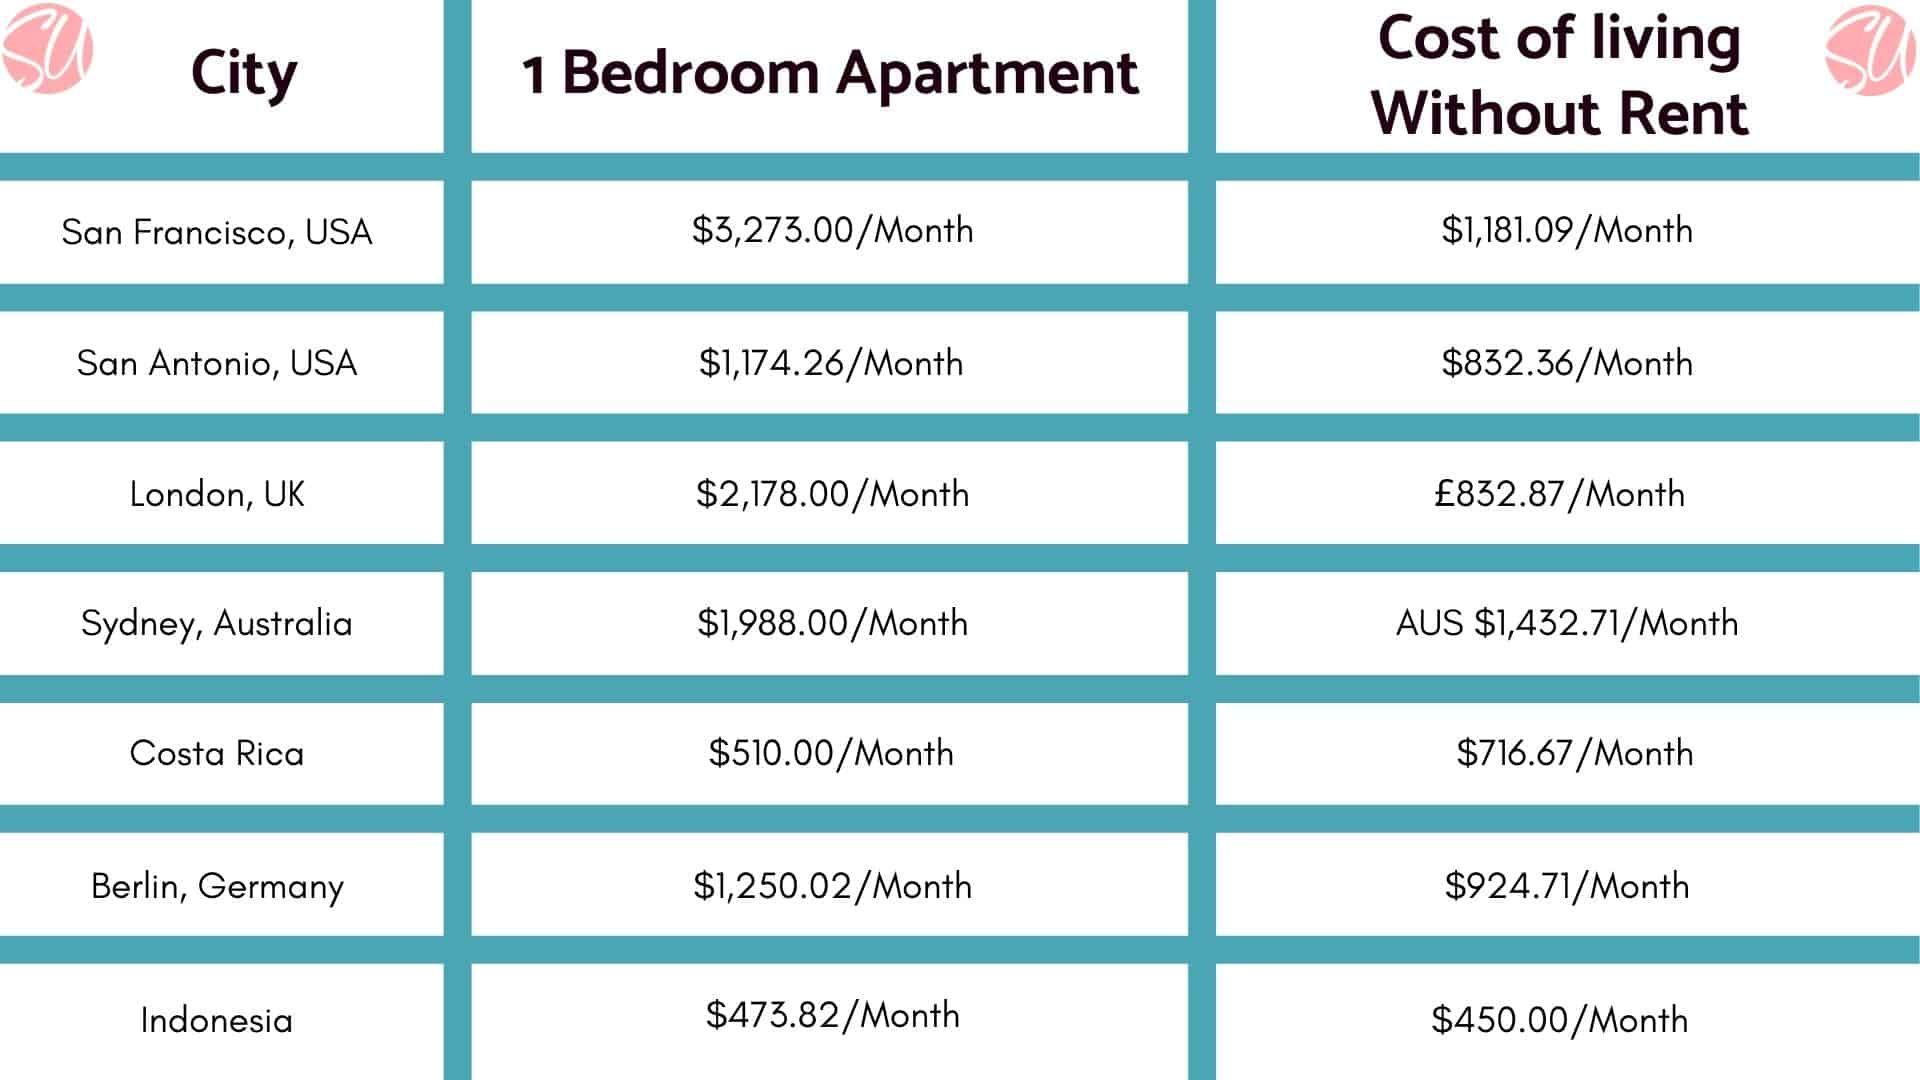 Cost of living across cities - branded